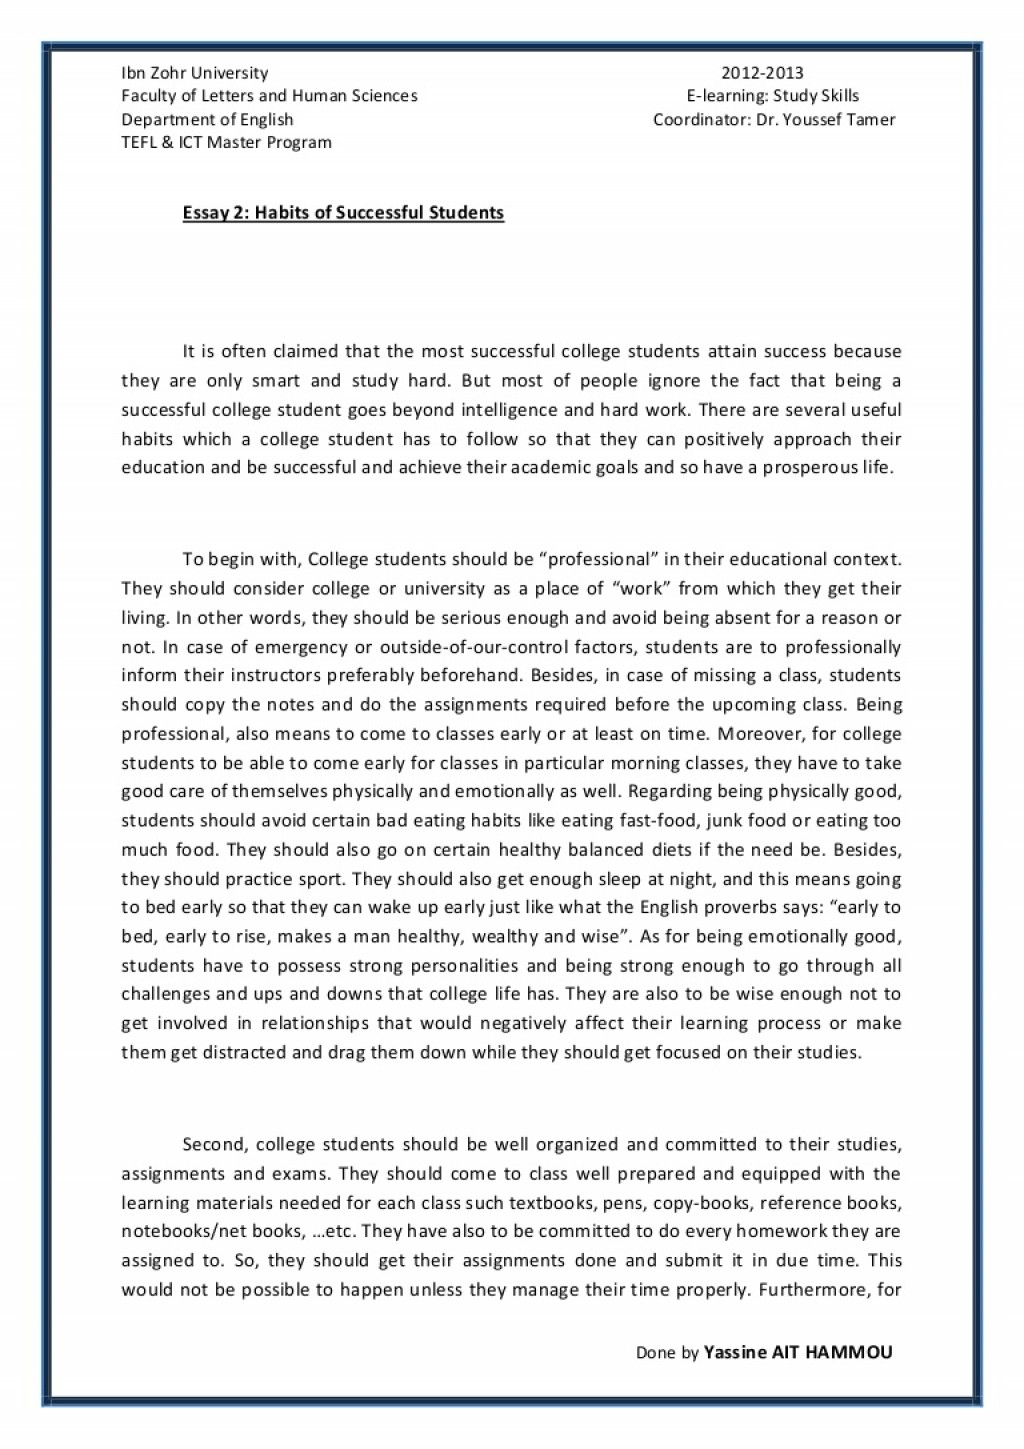 017 Essay Example Essay2 Succesfulcollegestudentshabitsbyyassineaithammou Phpapp01 Thumbnail On Breathtaking Career Goals And Aspirations Sample Choosing A Path Large